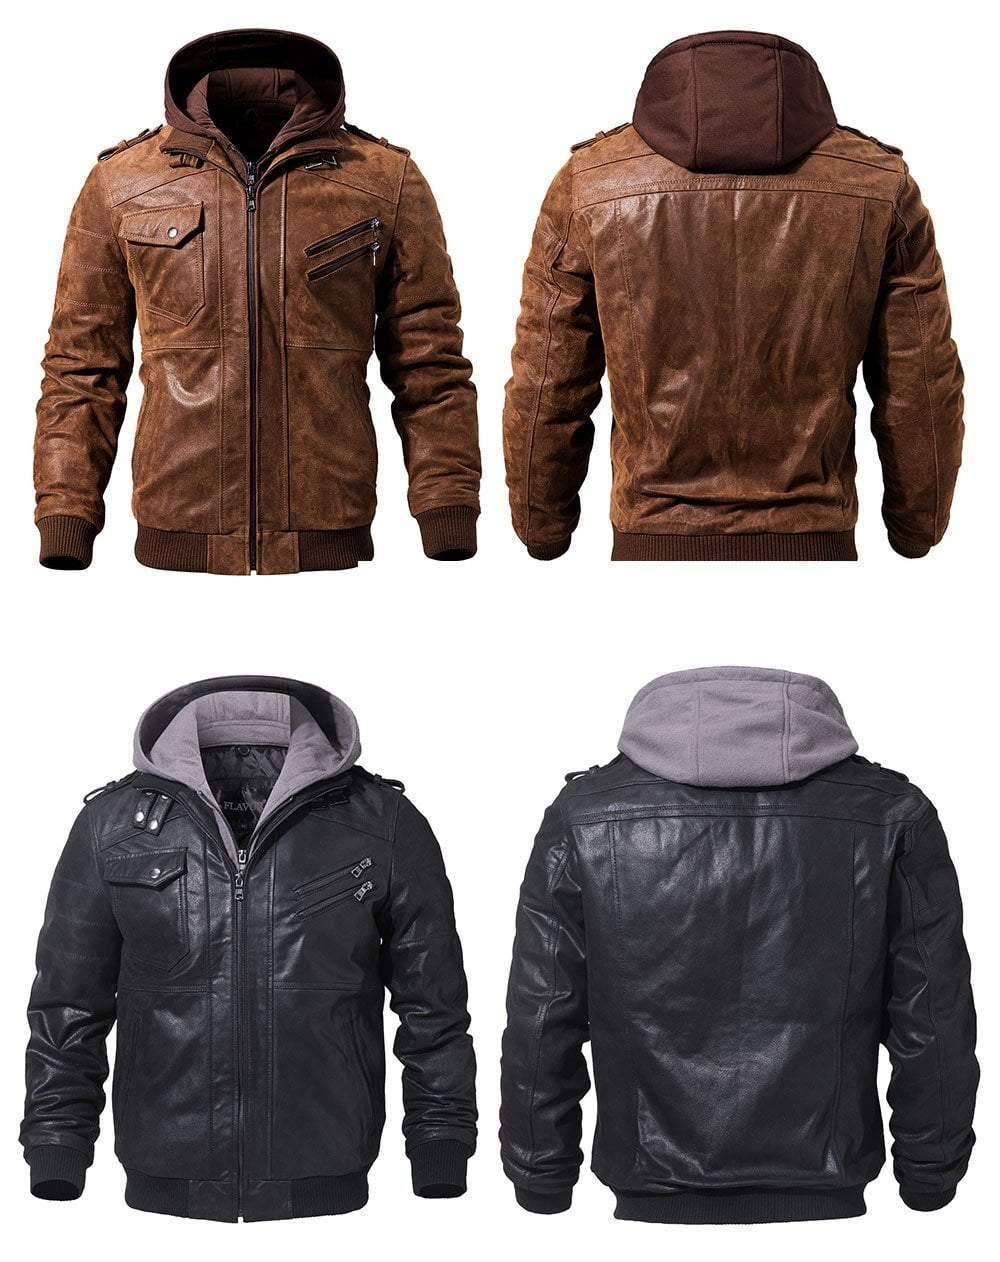 Ride Clean Genuine Premium Leather Jacket By Flavor  -  Brown / XS  -  Jacket  - SNS Outlet